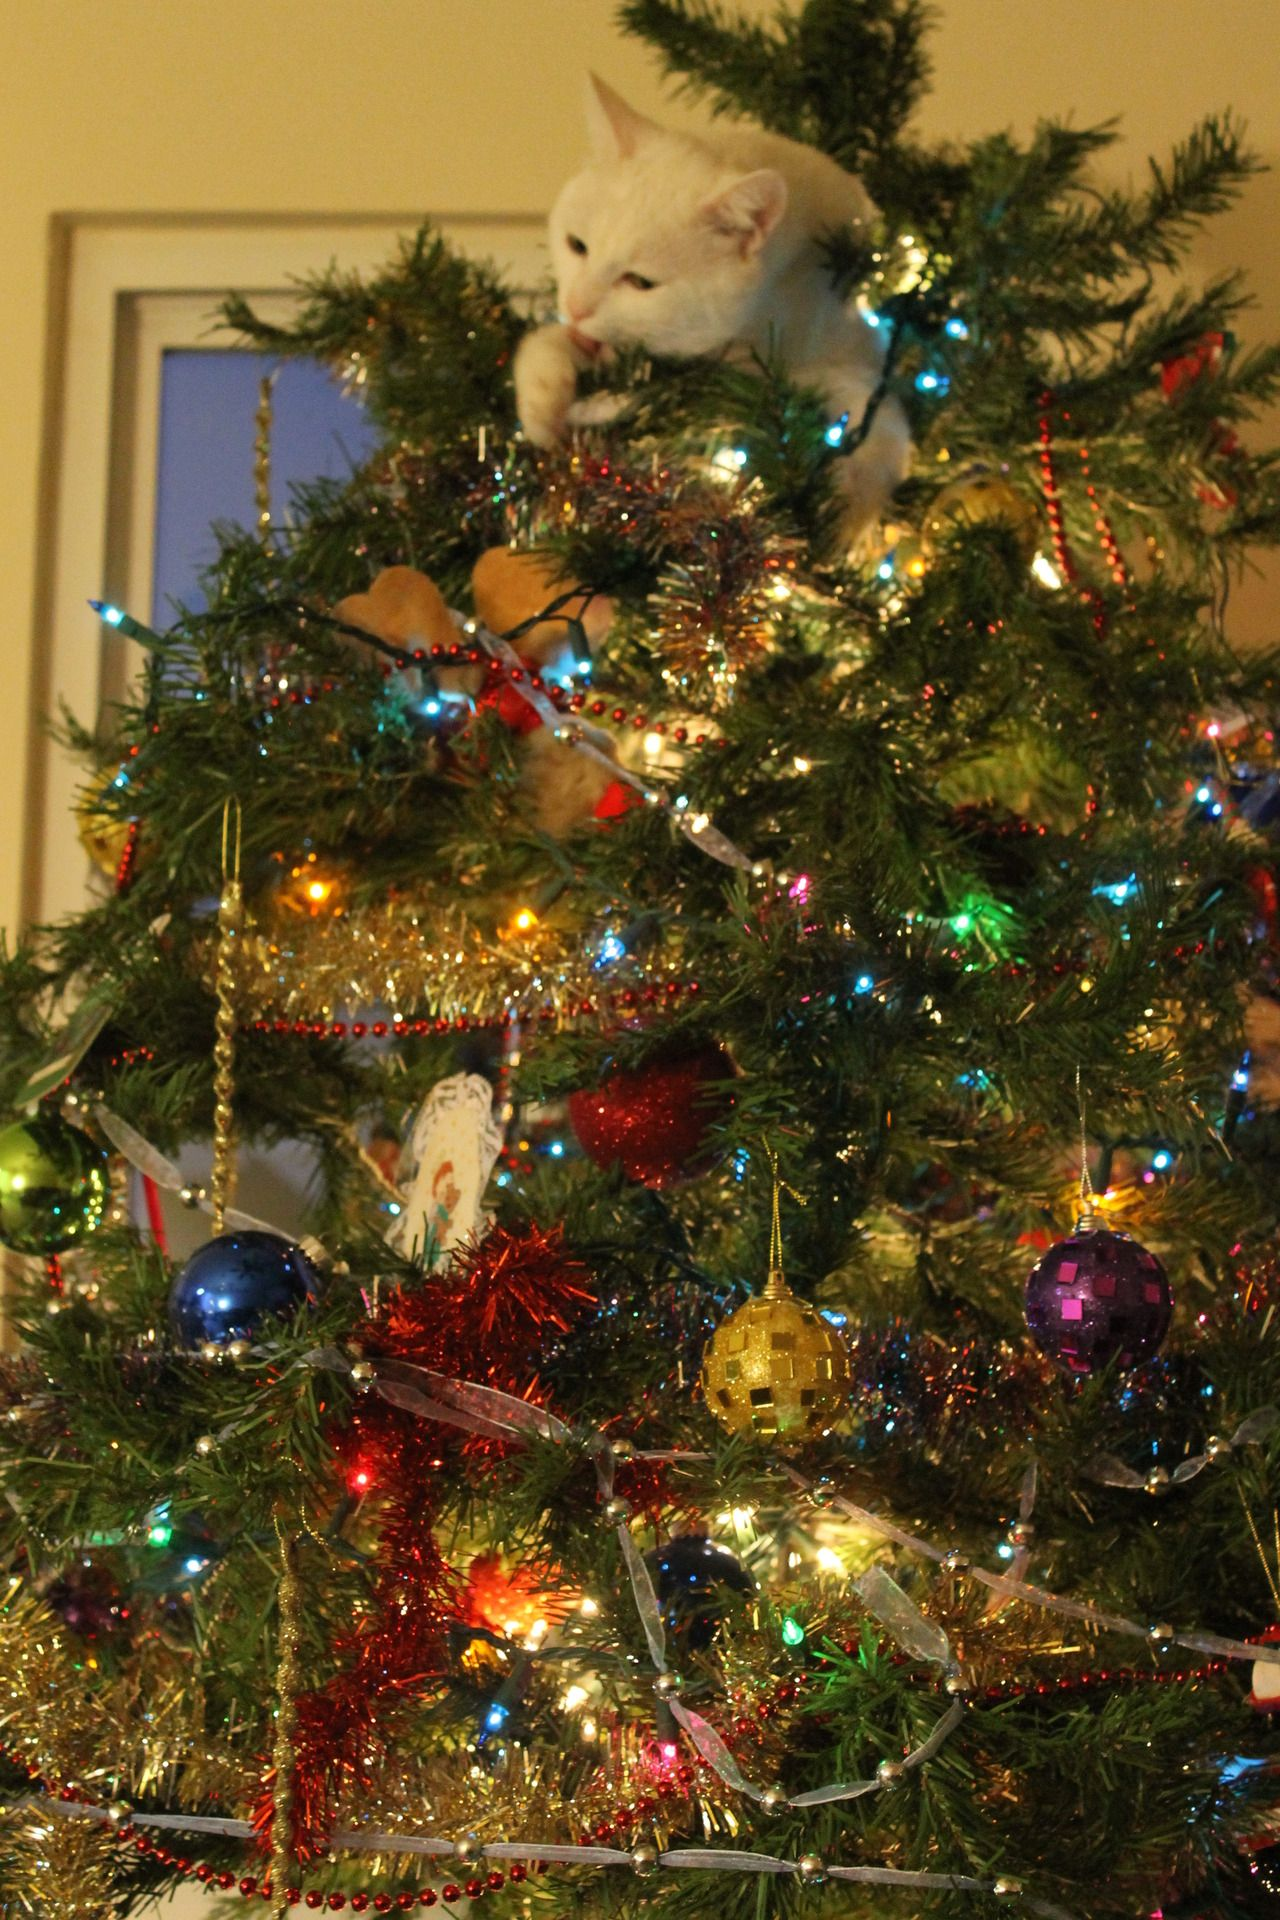 ♫♪♪ ♫ ♪♪ Oh Christmas tree, oh Christmas tree, your ornaments are history ♫ ♪♪ ♫